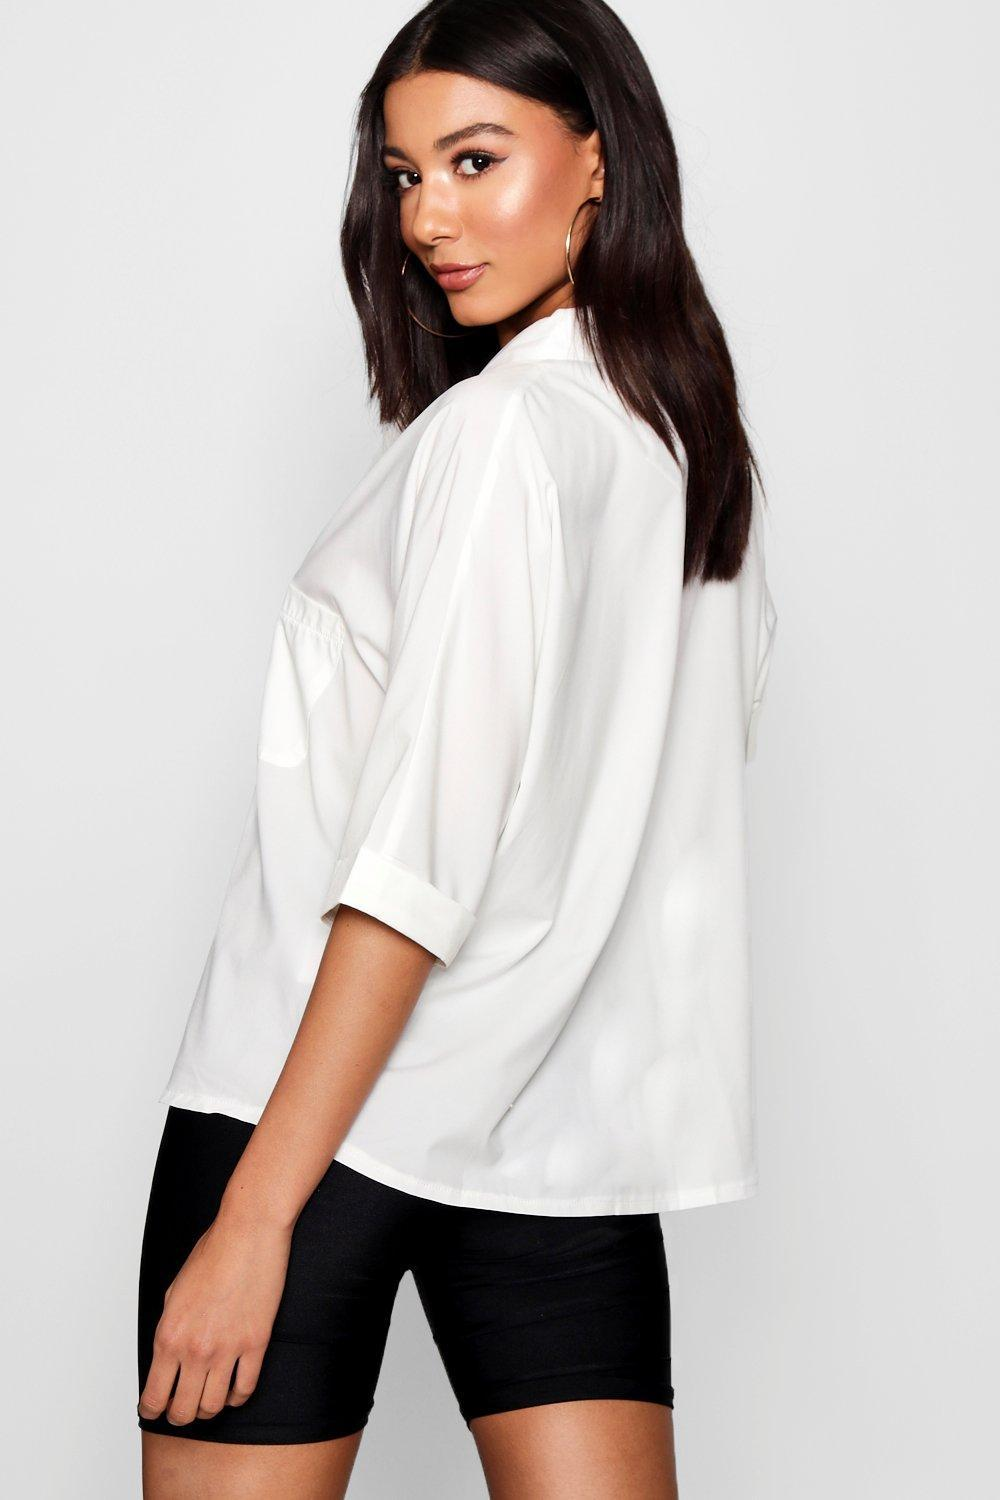 Cheap Sale Pay With Paypal Outlet Marketable Boohoo Horn Button Detail Revere Collar Shirt Free Shipping Cheap UjNBd1IO3y